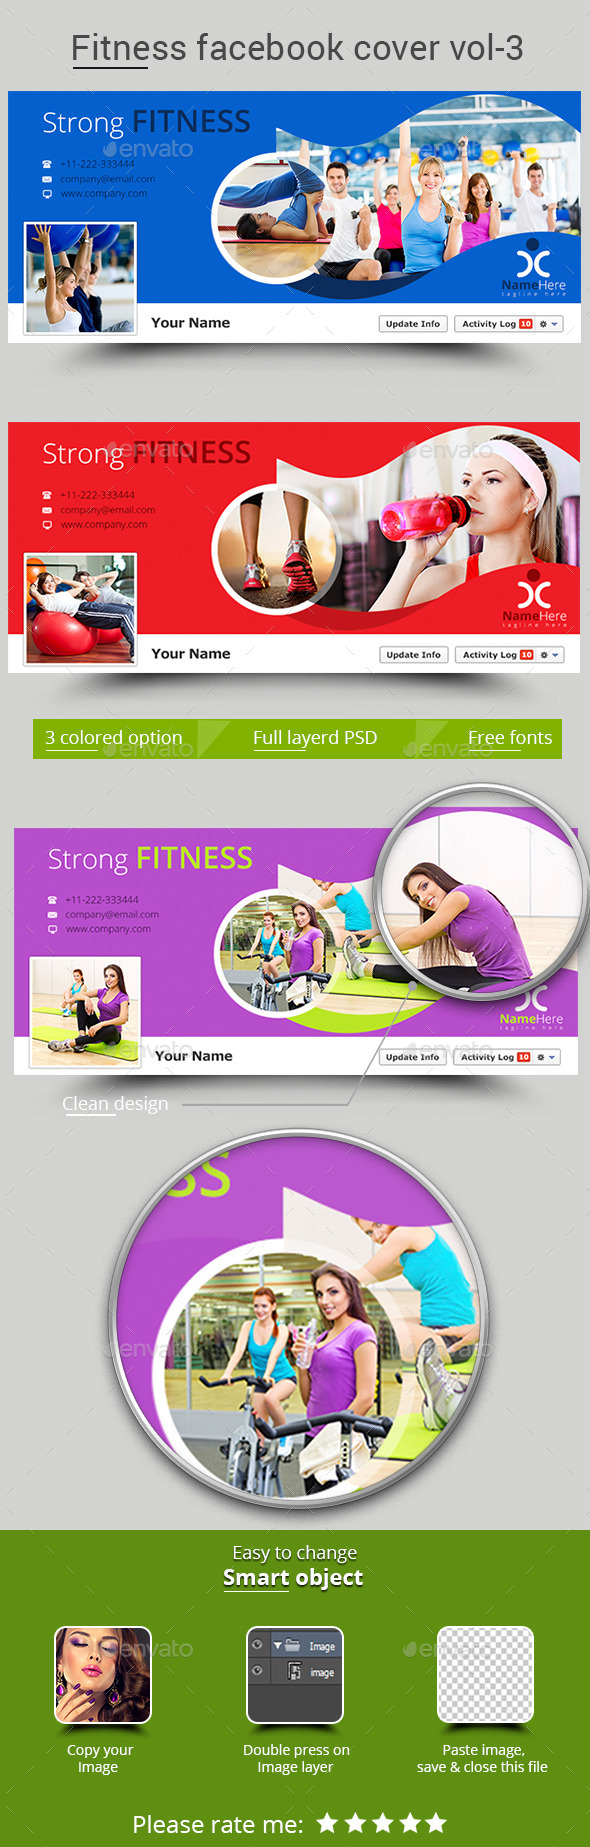 Fitness Facebook Cover Vol-3 - Facebook Timeline Covers Social Media